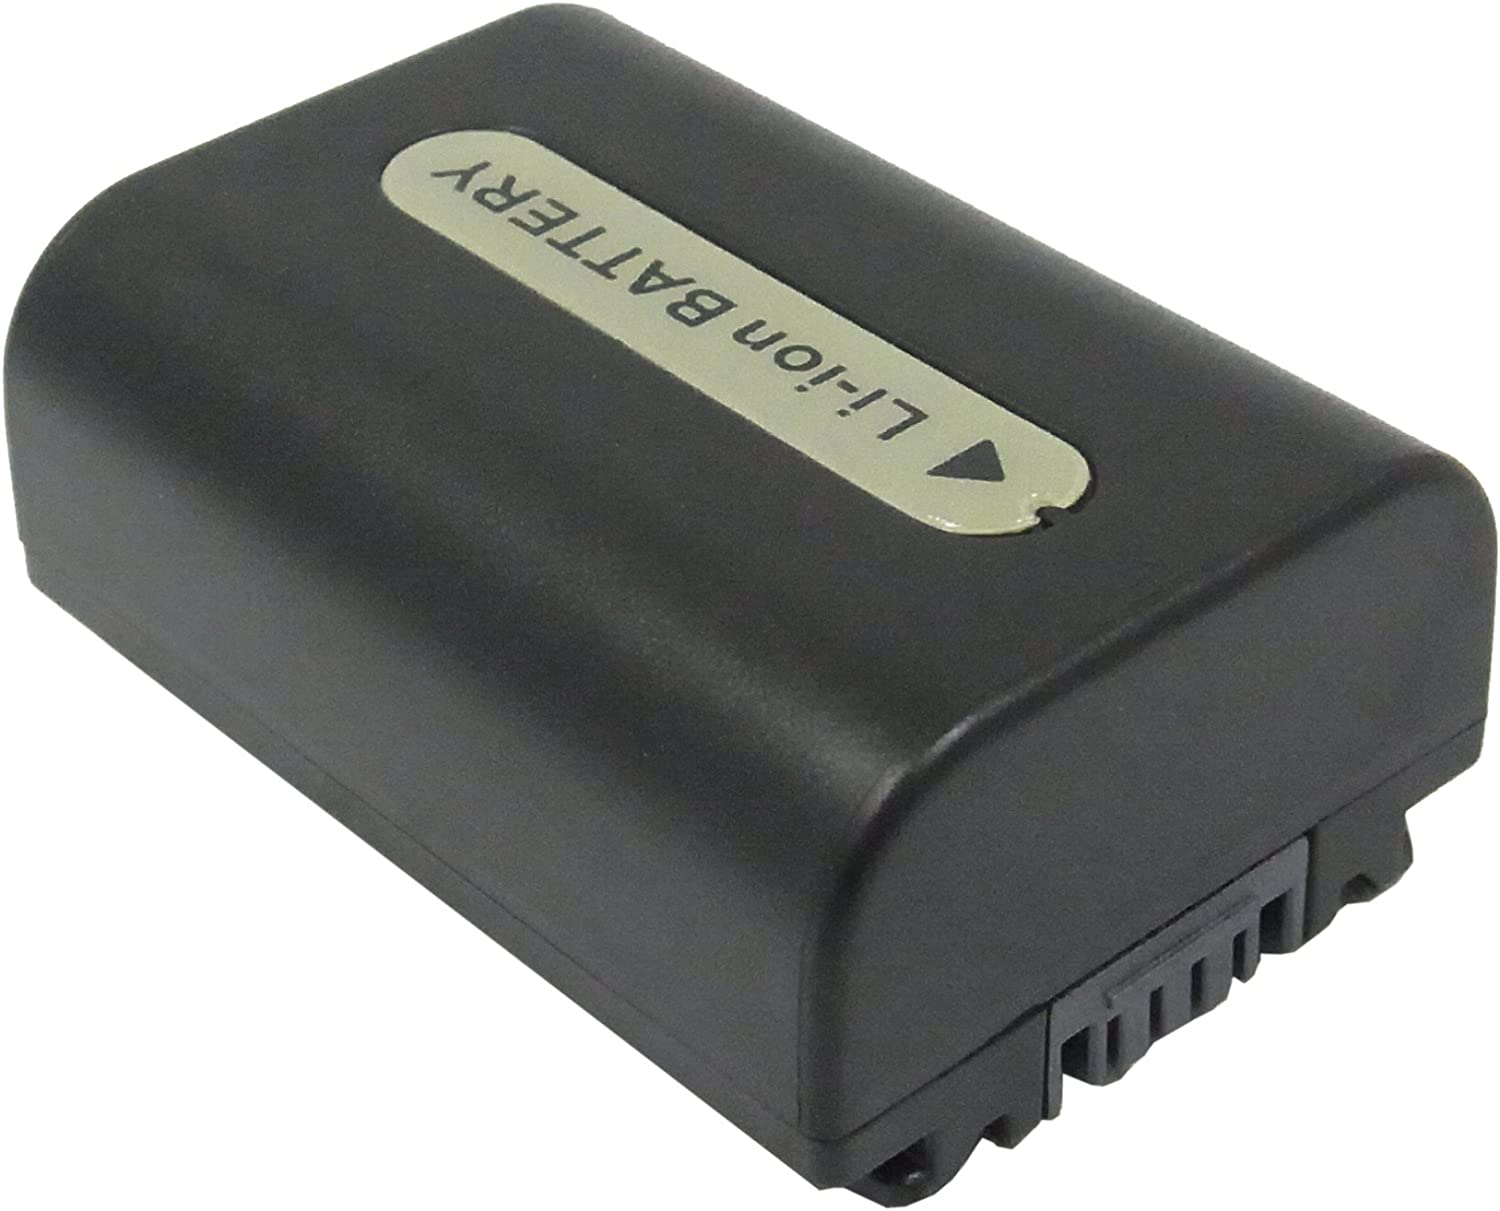 Battery Replacement for Sony DCR-HC32E DCR-HC32E DCR-HC33E DCR-HC35E DCR-HC36 DCR-HC36E DCR-HC37 DCR-HC37E Record